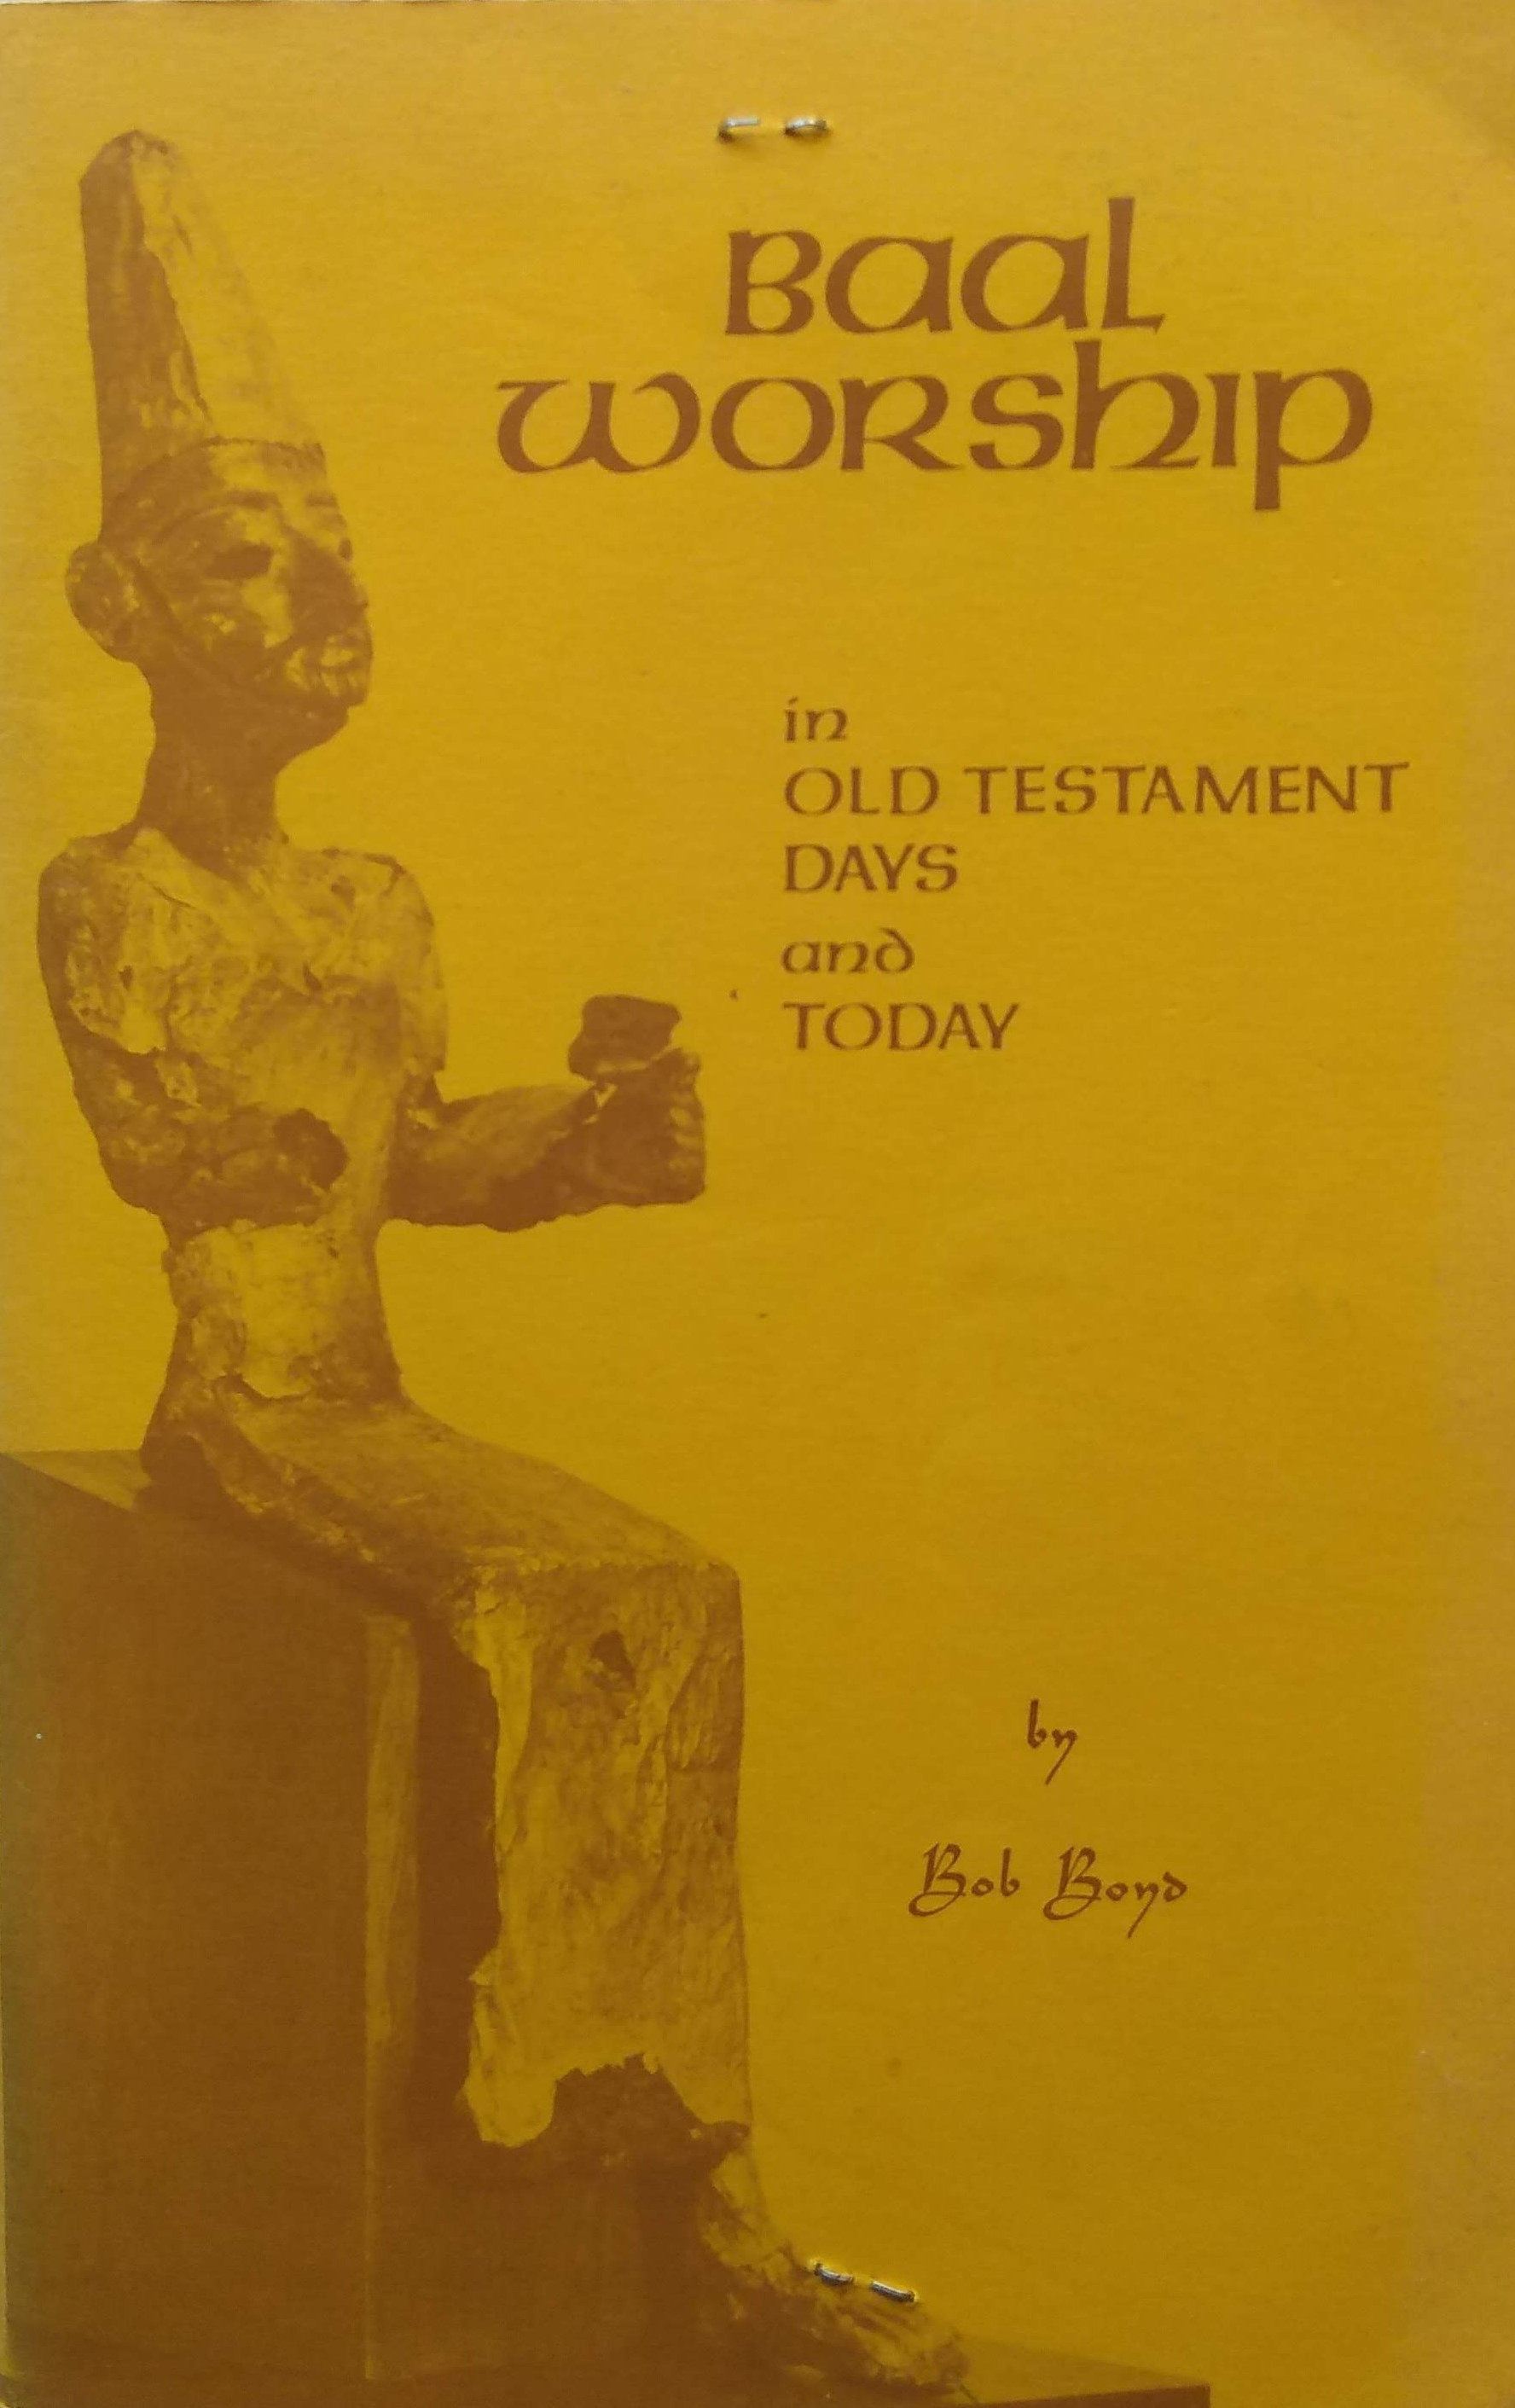 Baal Worship in old testament days and t